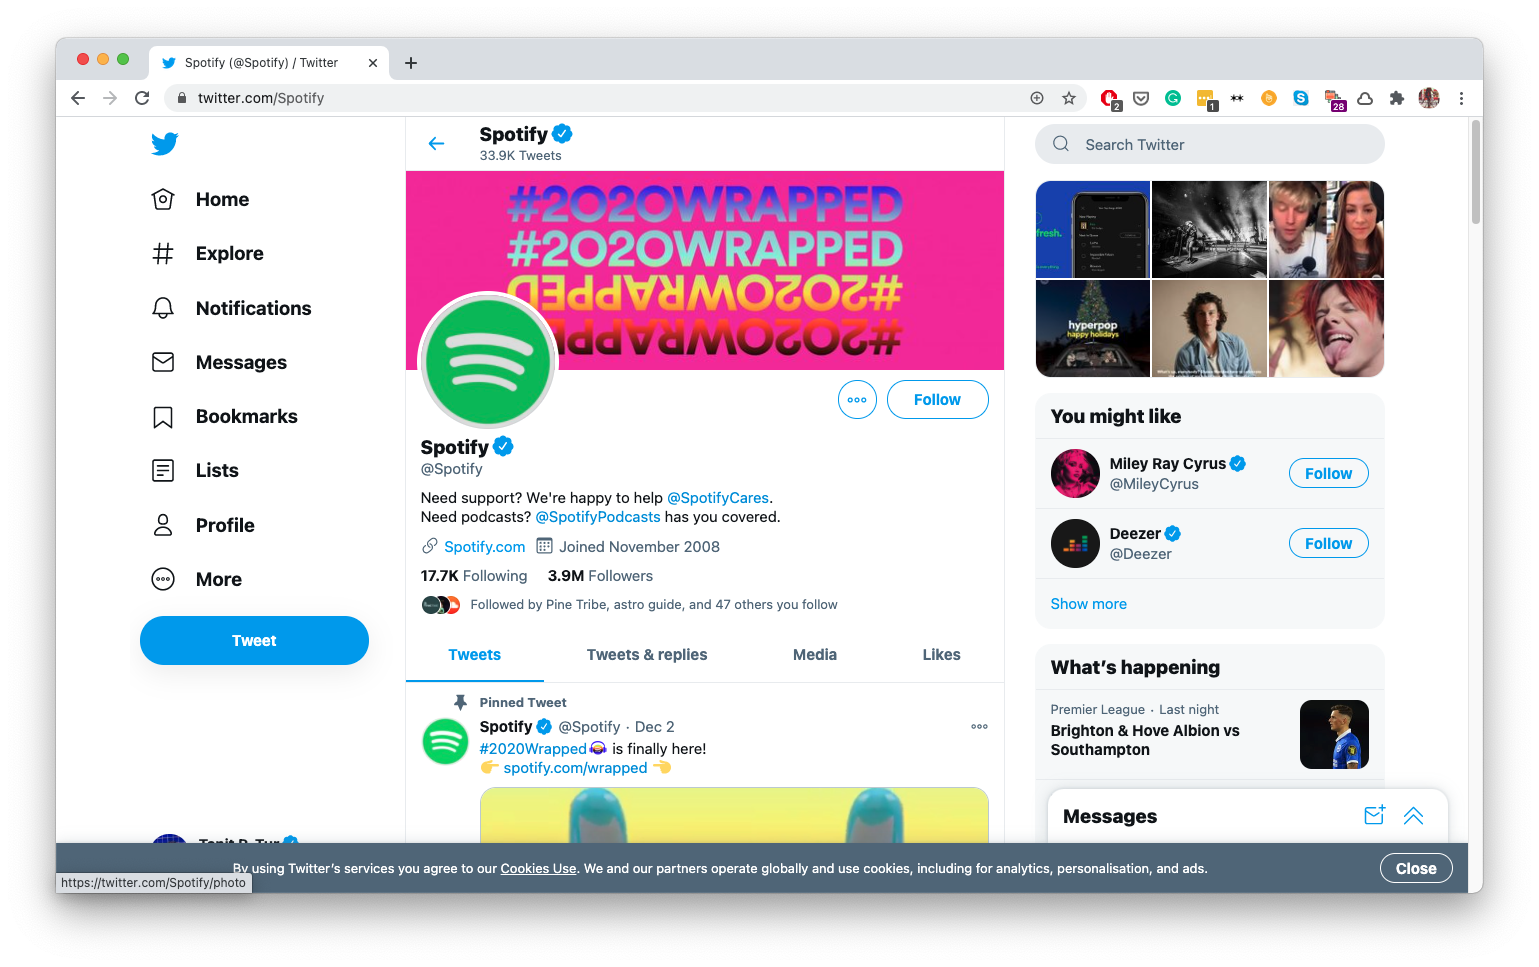 Spotify's Twitter account directs customers to a separate Twitter account to get help.